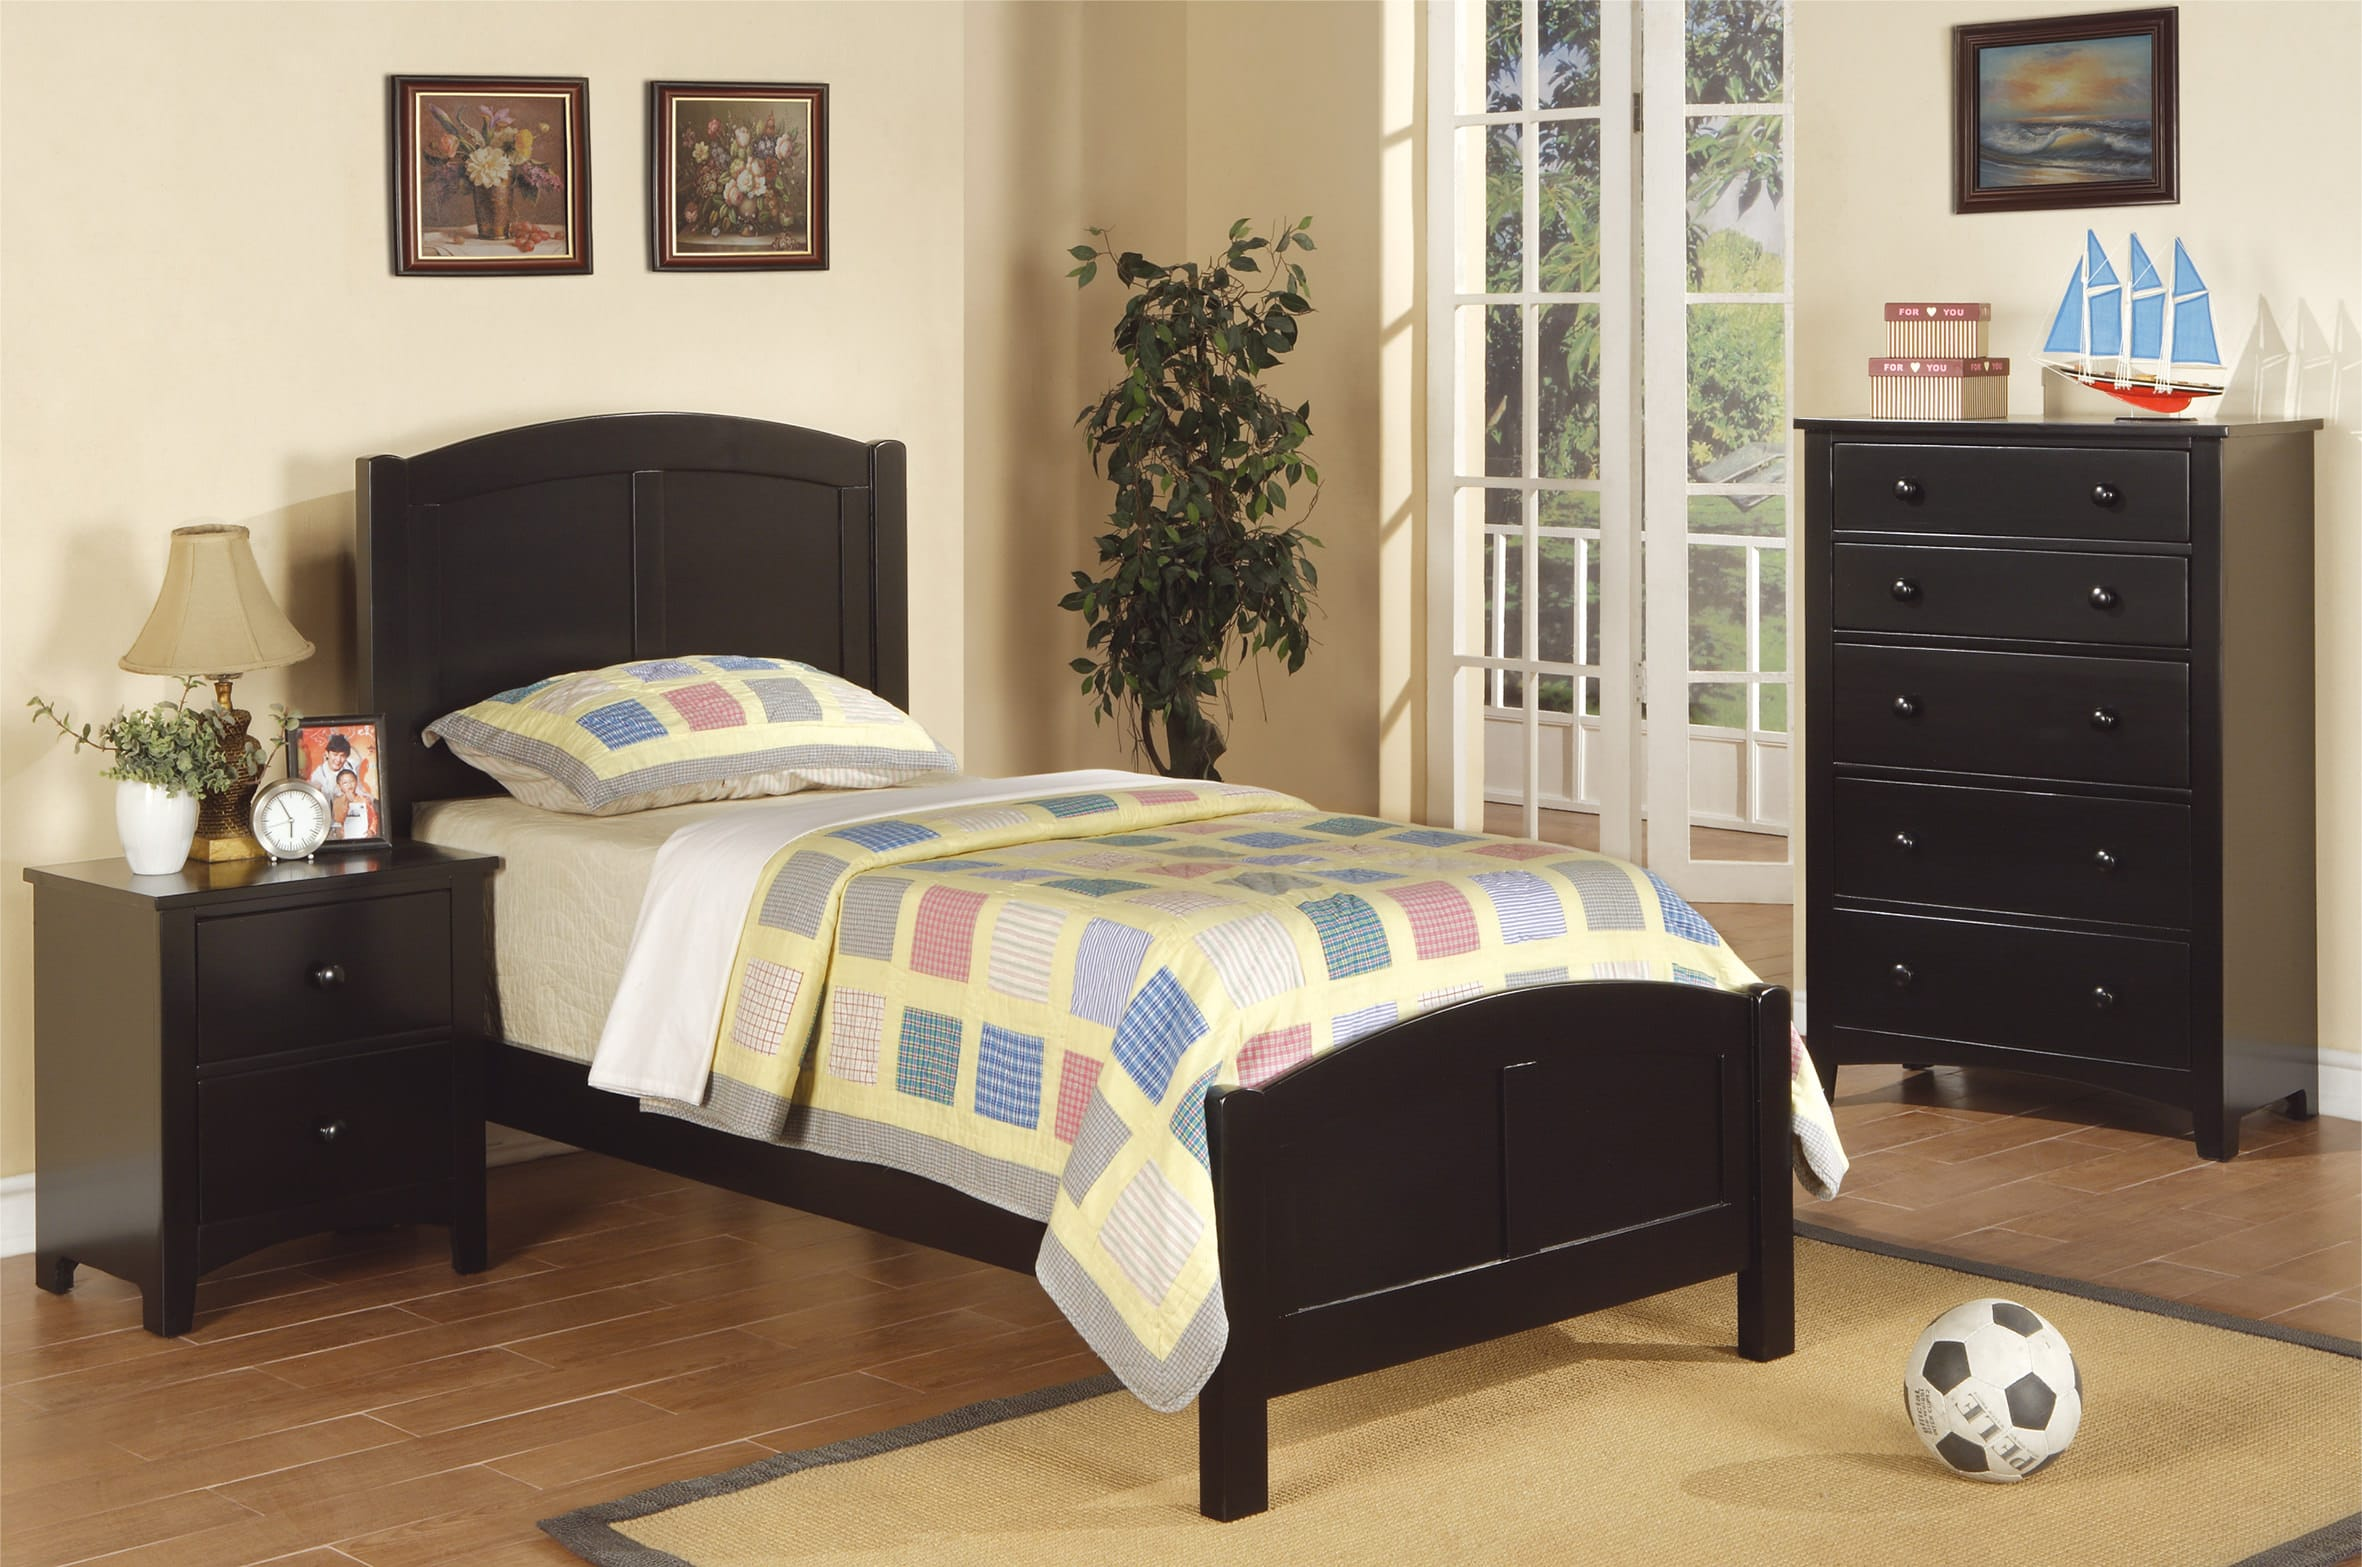 design size outstanding storage queen drawers white headboard archived xl of king image upholstered full wood frames plans how frame wooden under platform twin headboards beds with raindance black solid underneath to as single canada on w walmart and bed